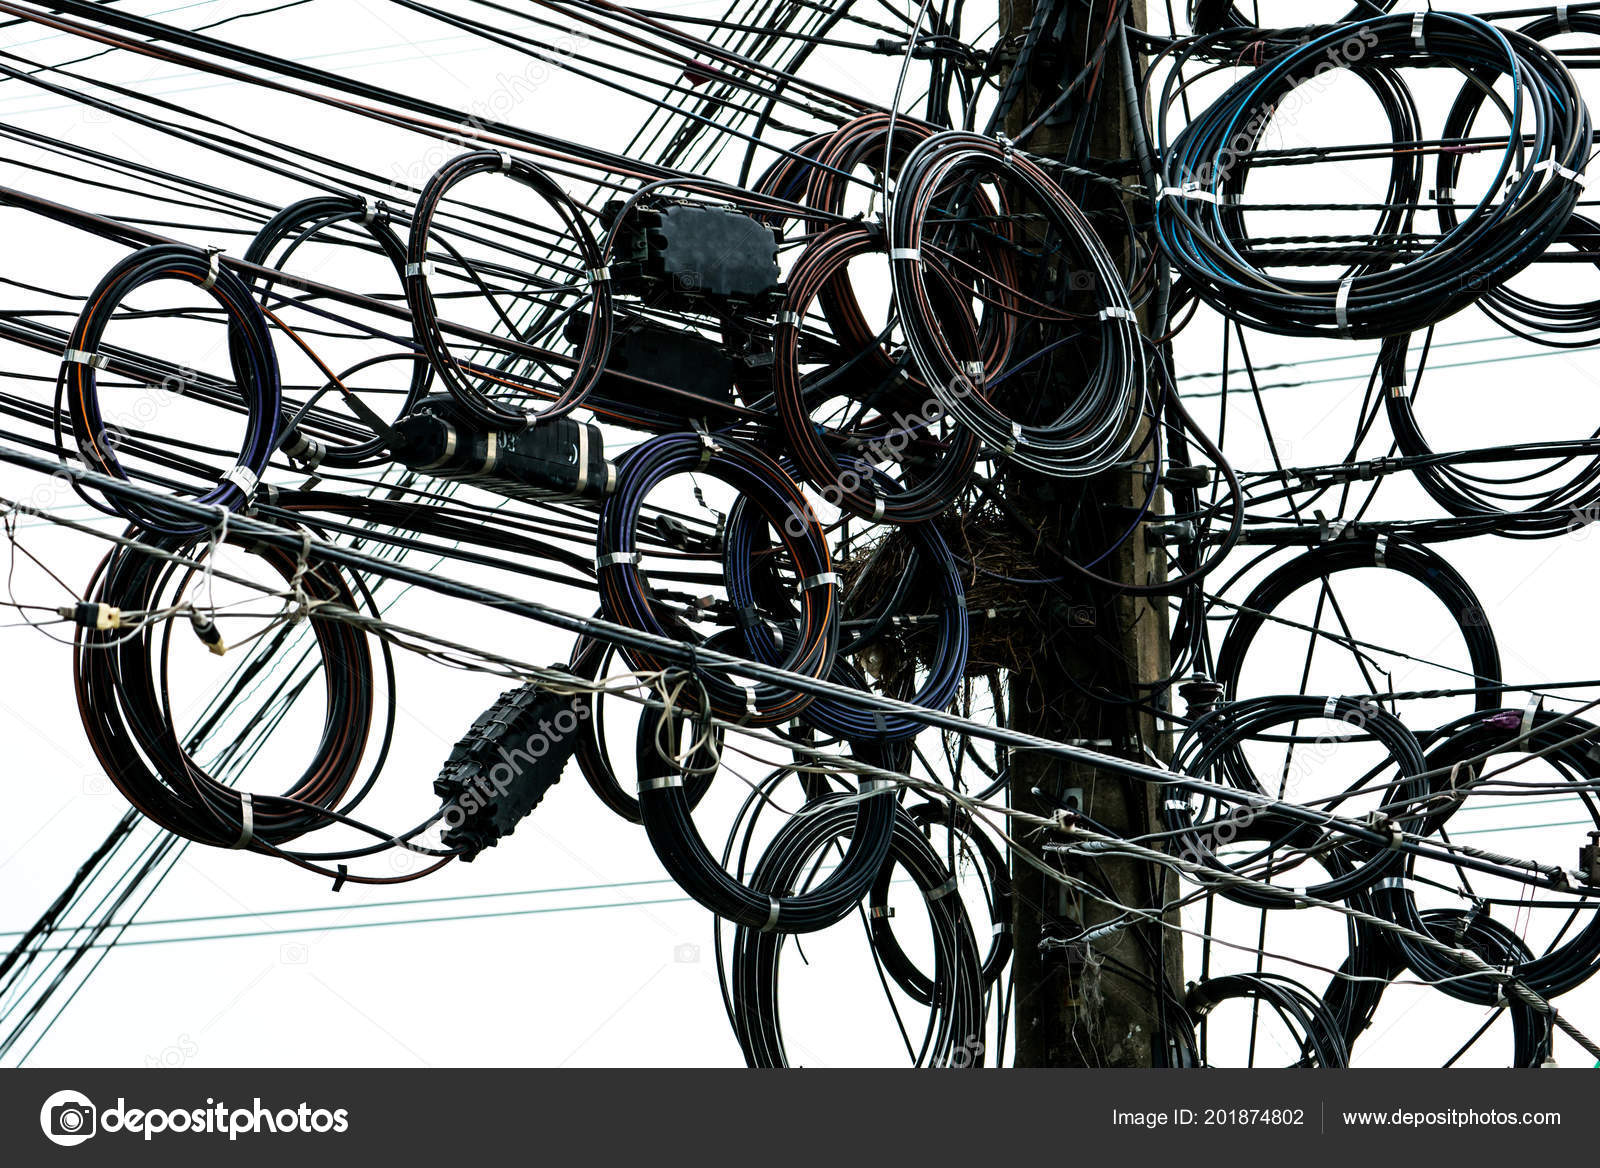 Tangled Electrical Wires Urban Electric Pole Disorganized Messy Wiring Organization Management Stock Photo